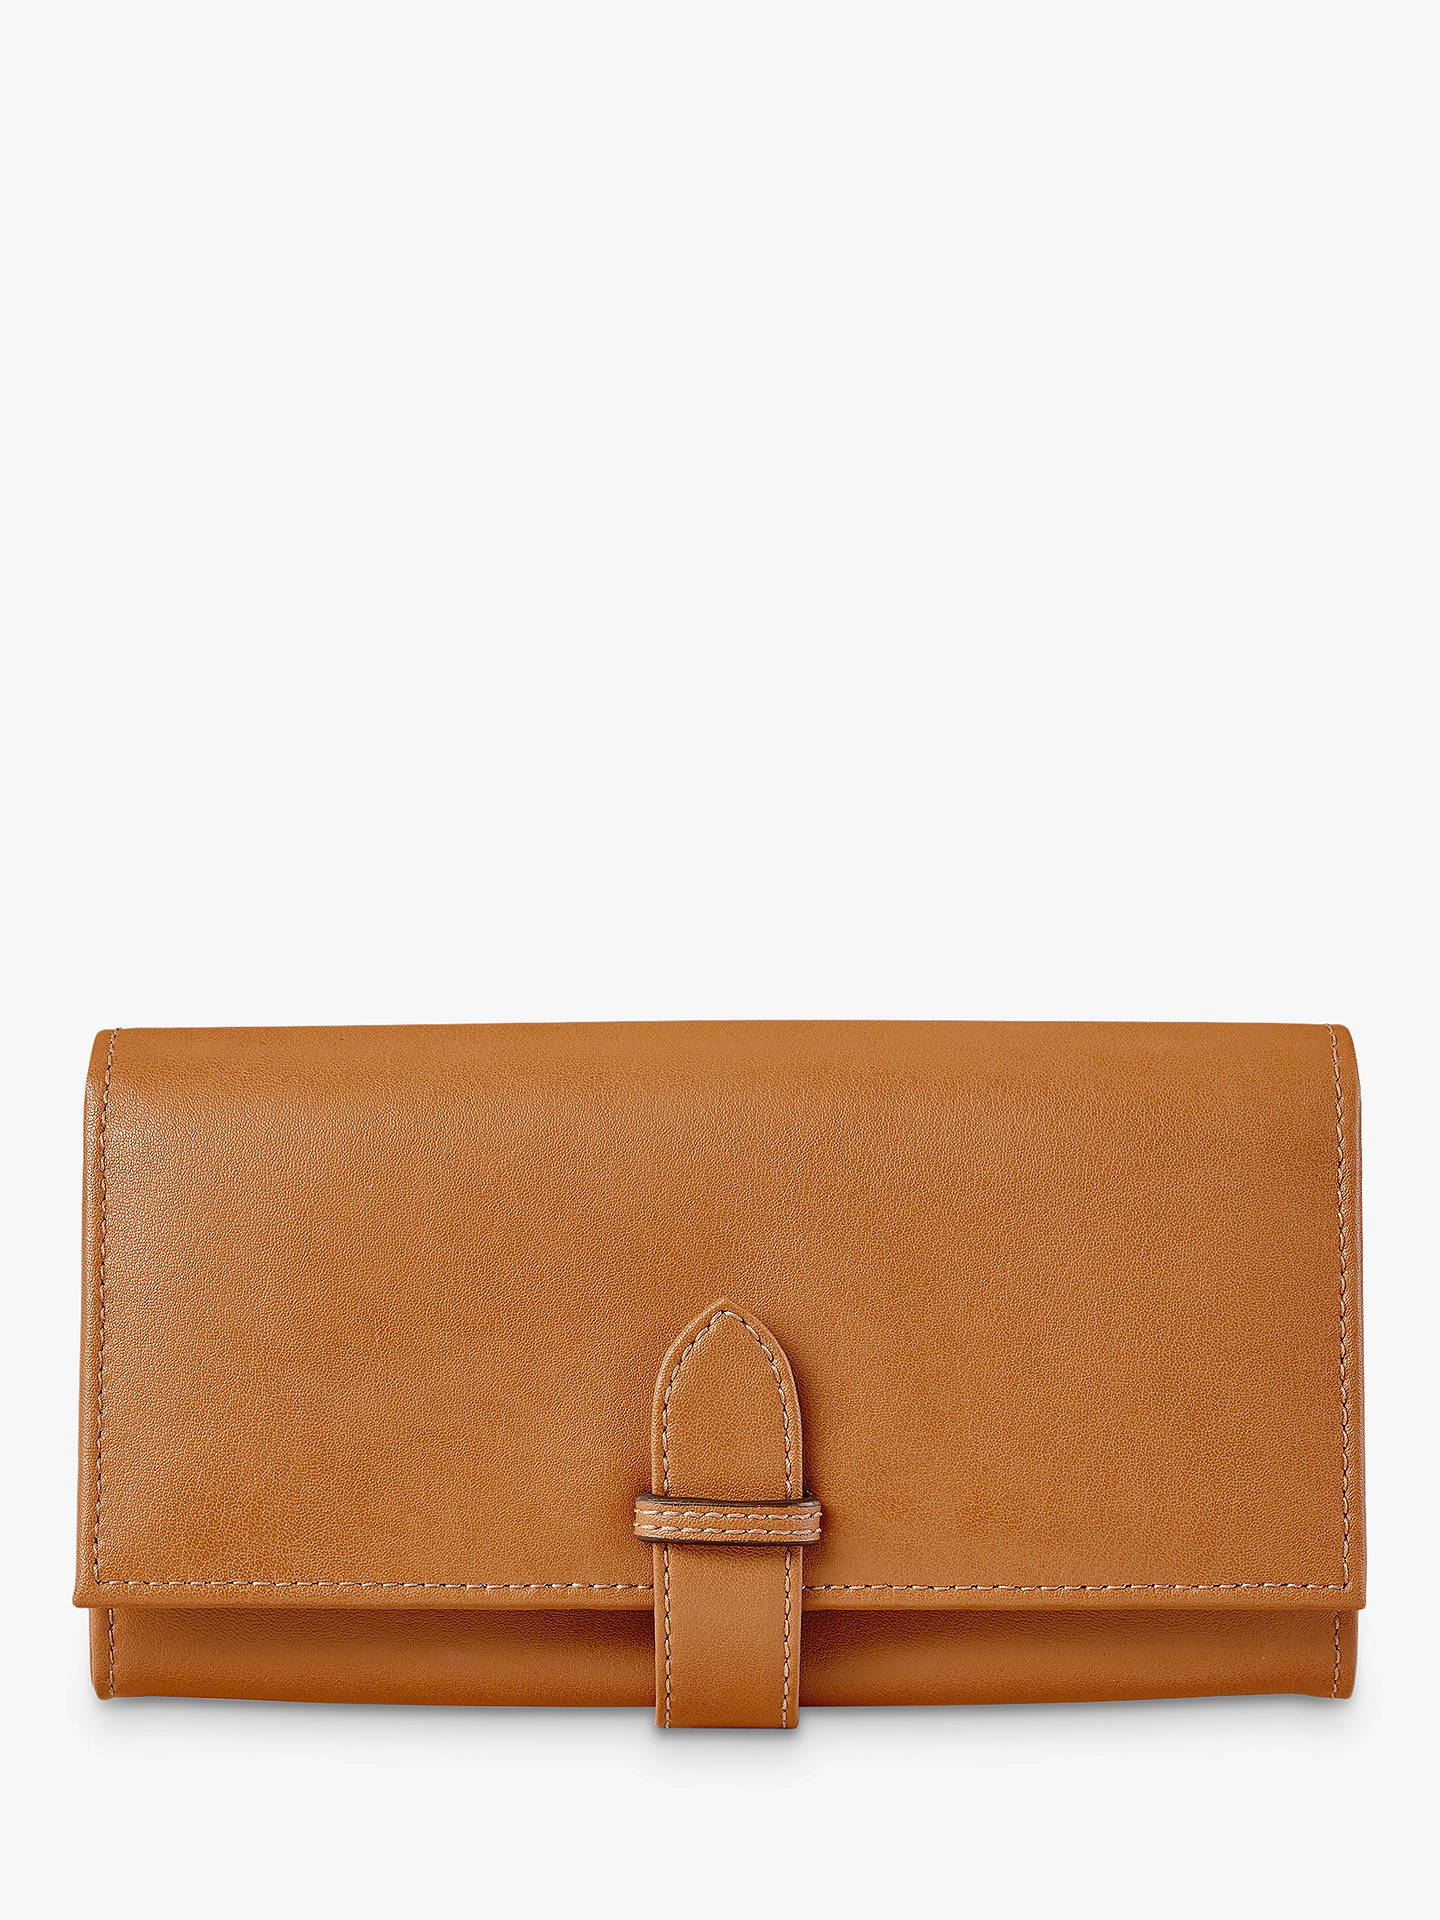 Buy Aspinal of London Leather Ladies Purse Wallet, Tan Online at johnlewis.com